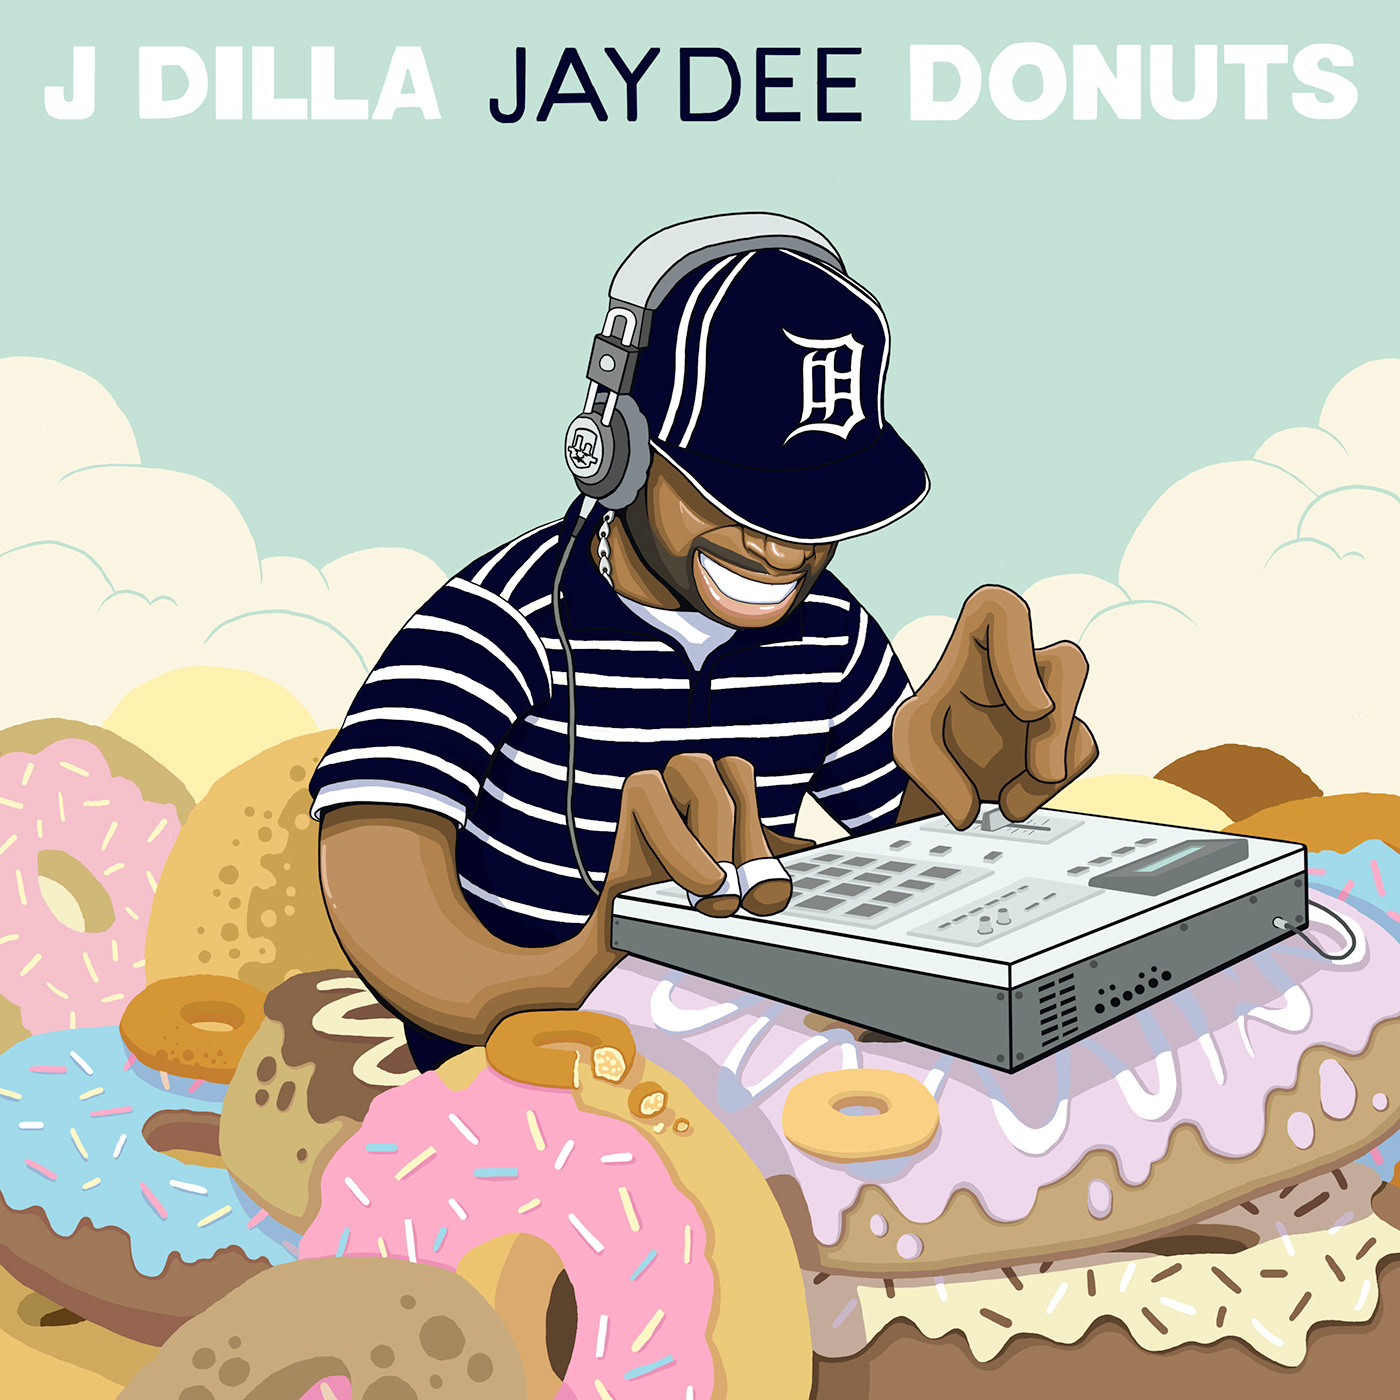 J Dilla Donuts Cover on Behance